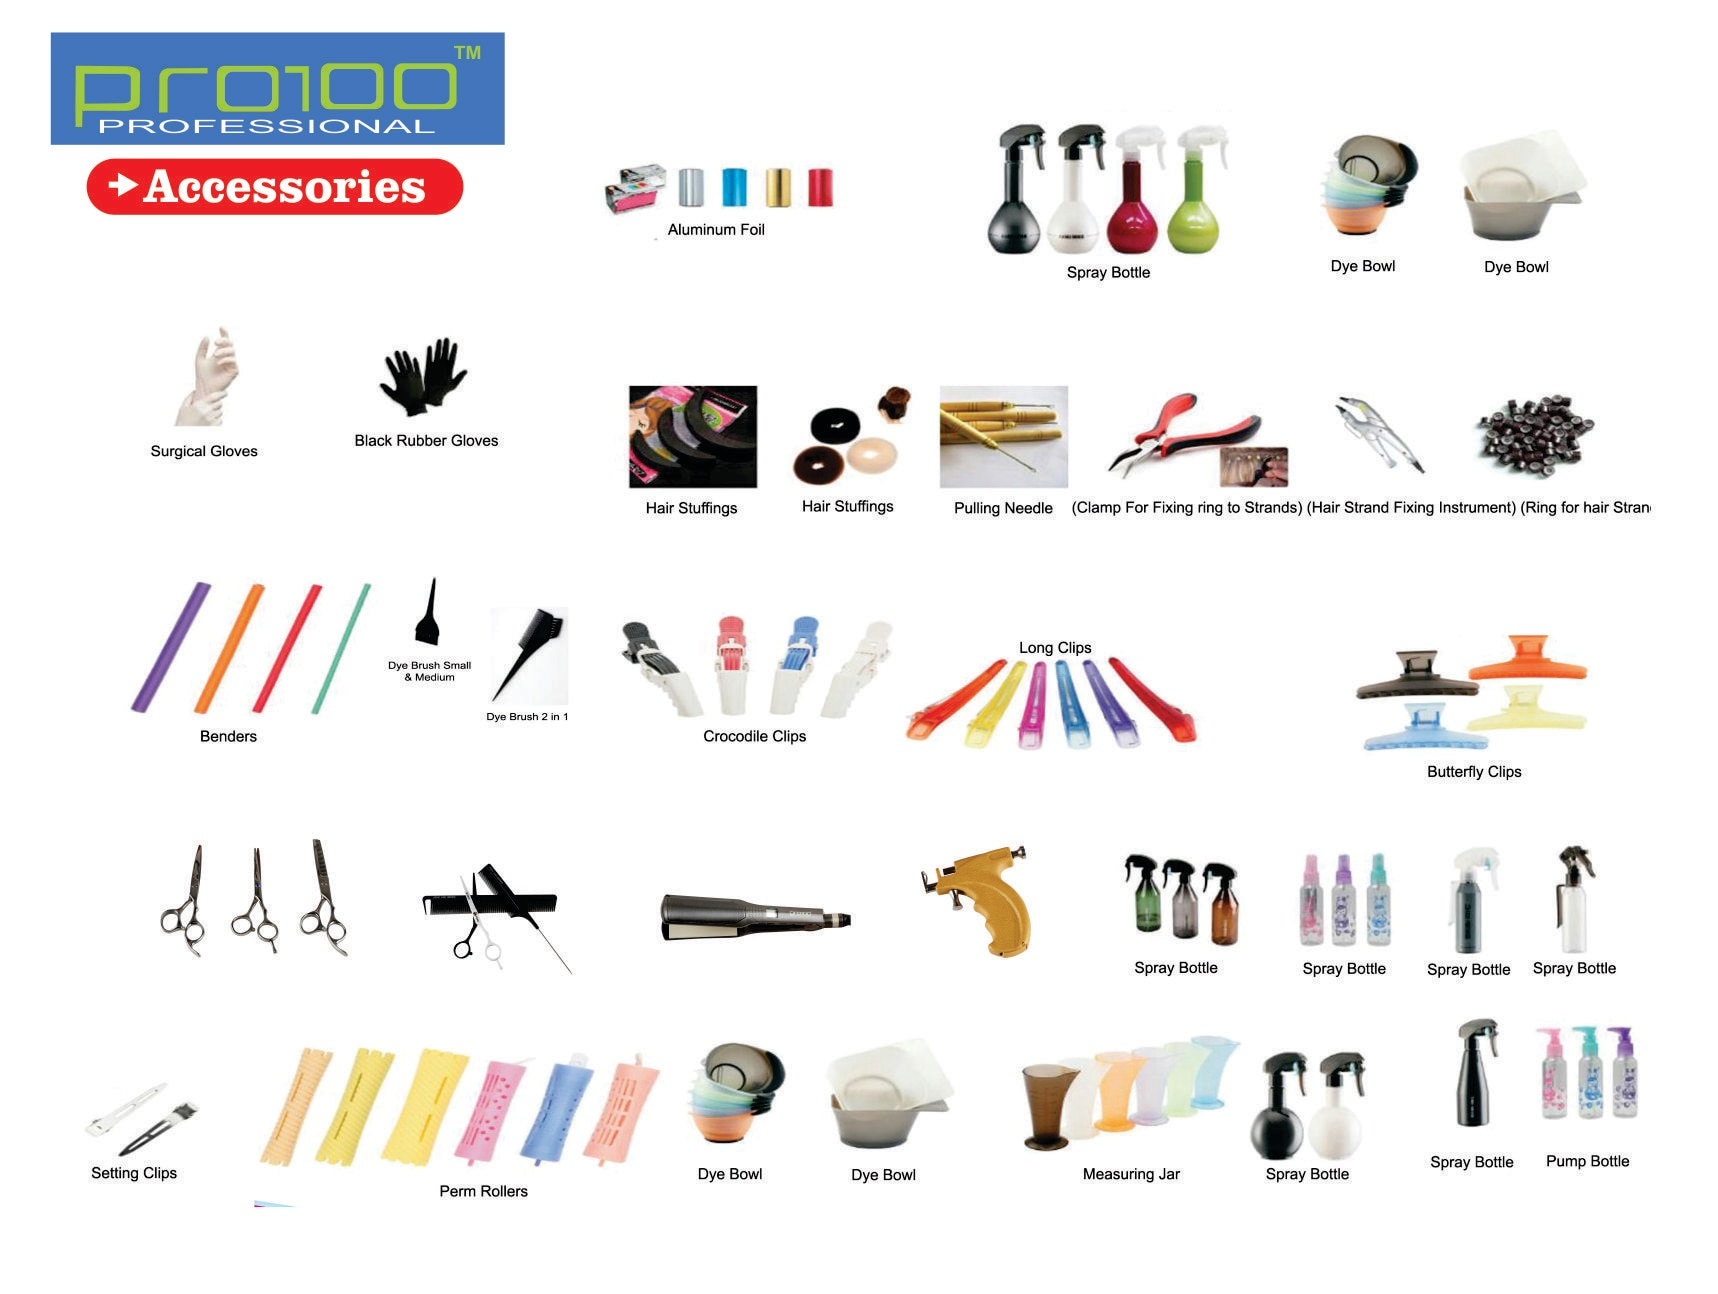 Contact us for a wide range of HAIR ACCESSORIES FOR SALON IN KOLKATA. We are a bulk SUPPLIER OF SALON AND HAIR ACCESSORIES IN KOLKATA.